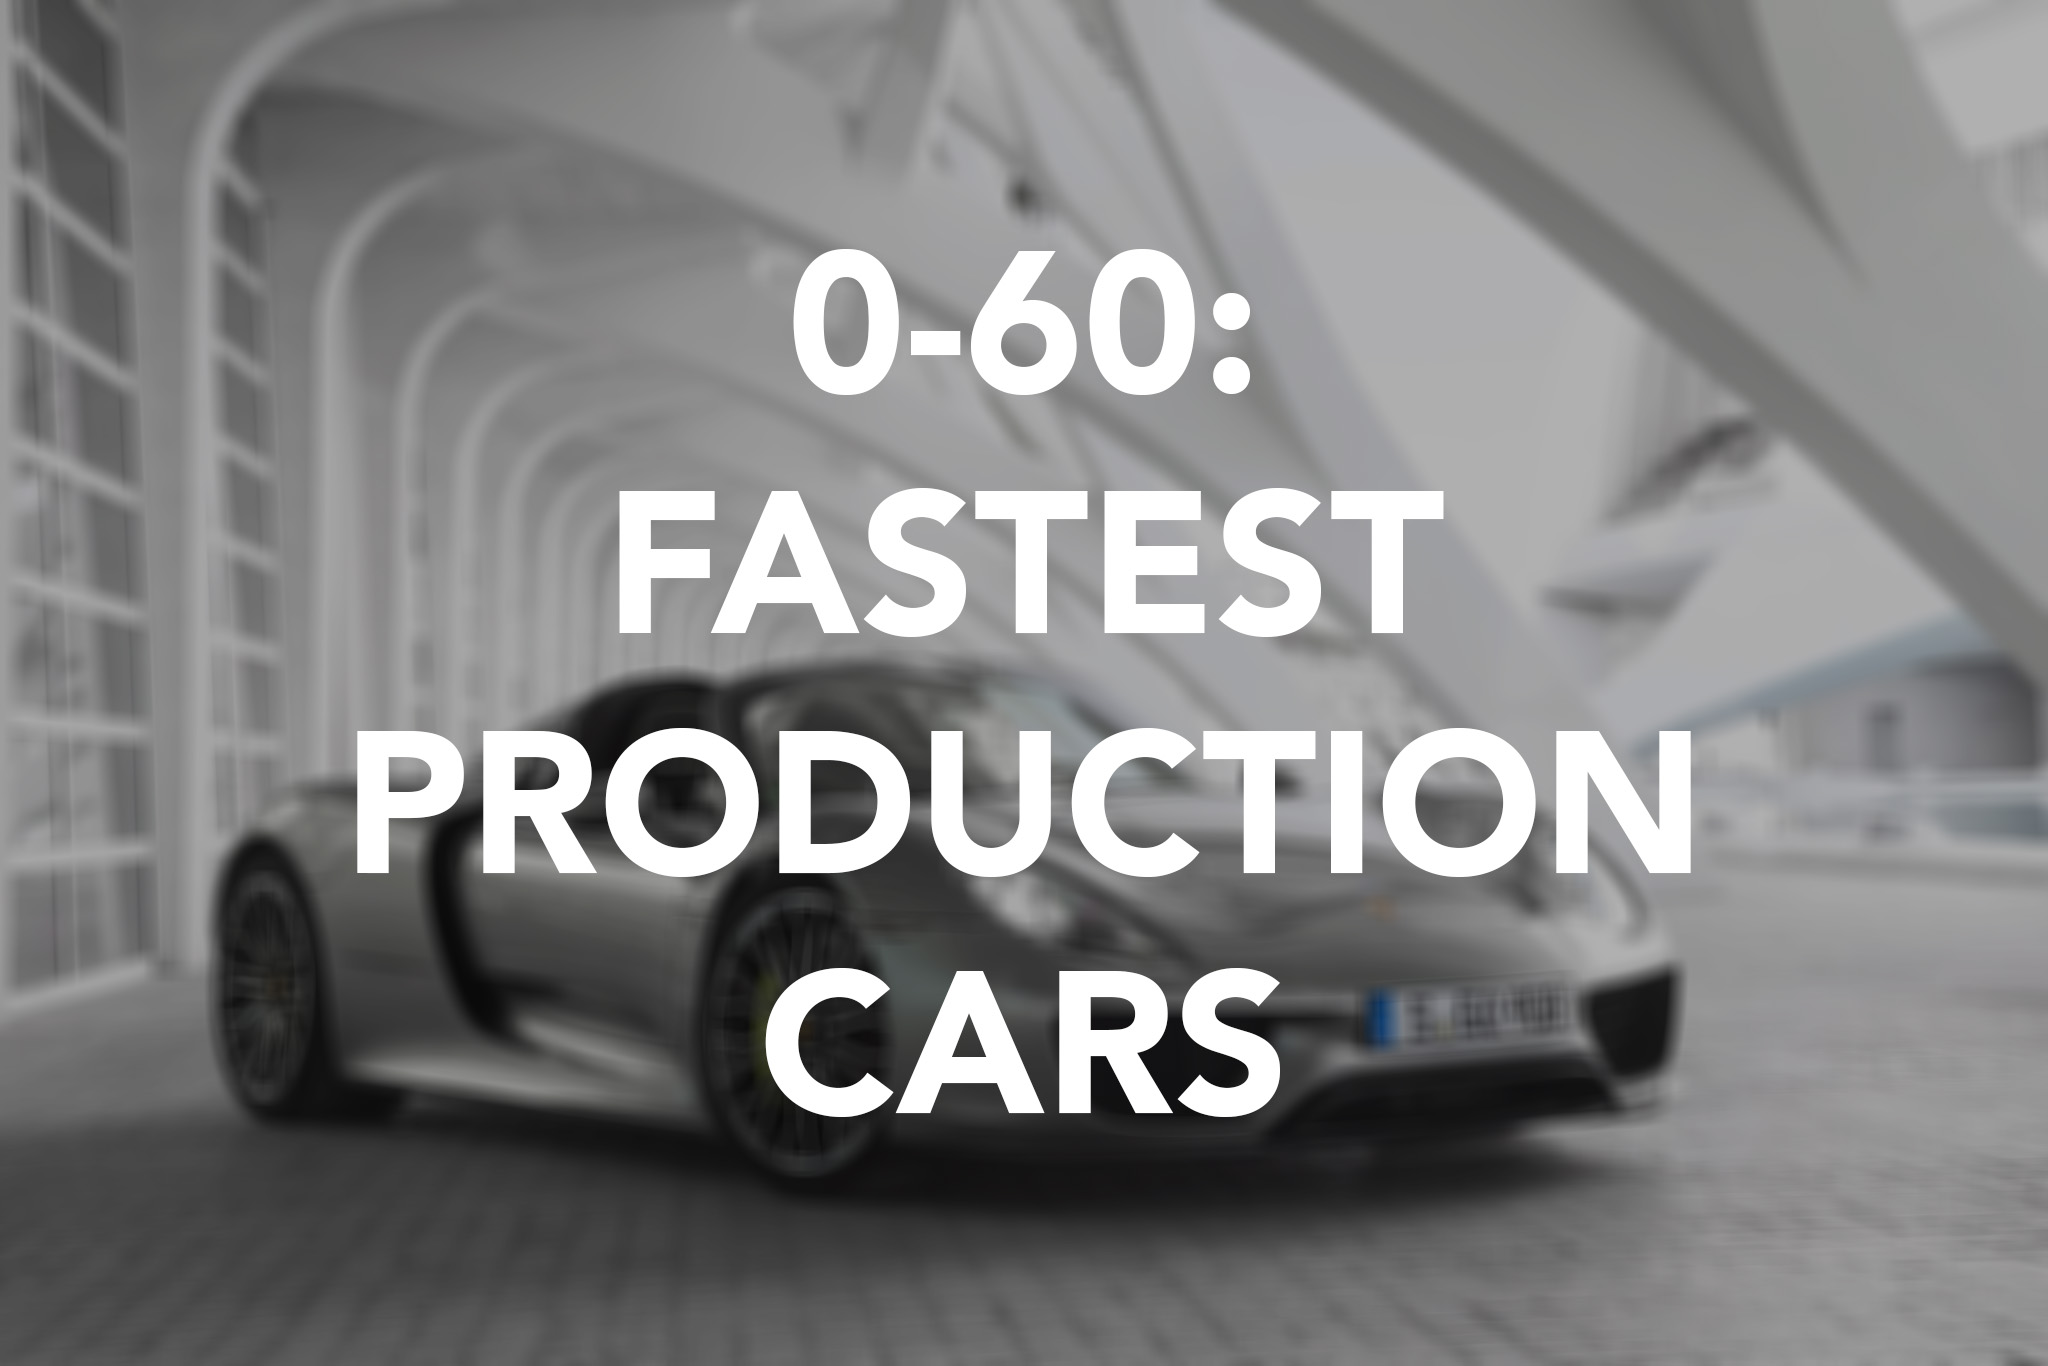 0-60: World's fastest production cars